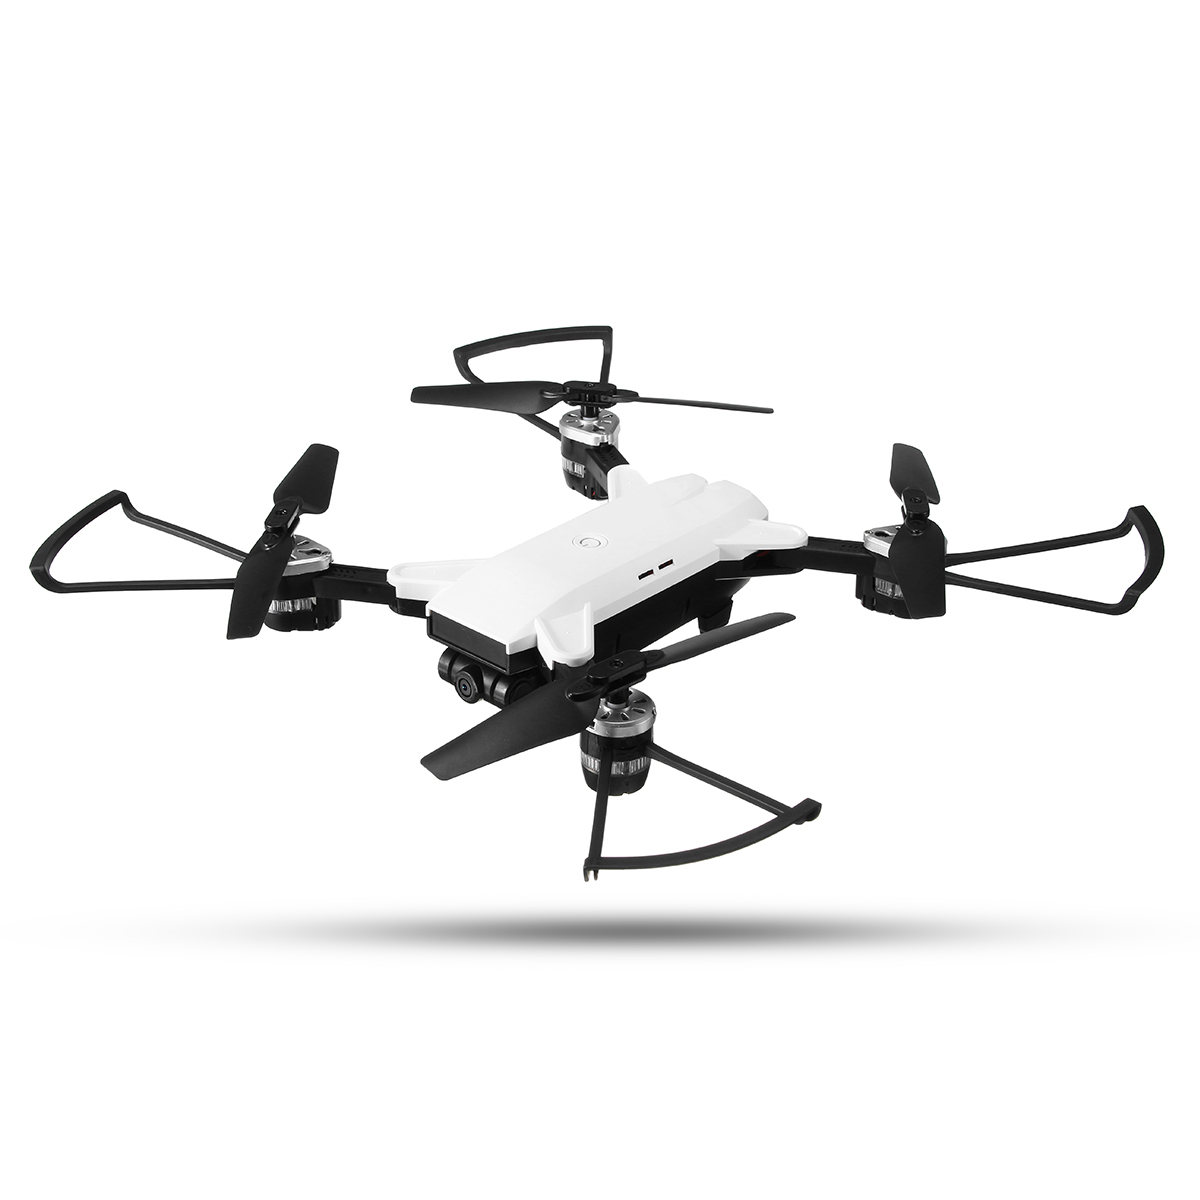 Smart Remote Control Kit HW Mini Foldable RC Helicopter Selfie Drone Wifi FPV 0.3MP  Altitude With LED Light Headless tracker selfie pocket drone altitude hold foldable mini rc quadcopter wifi camera helicopter headless